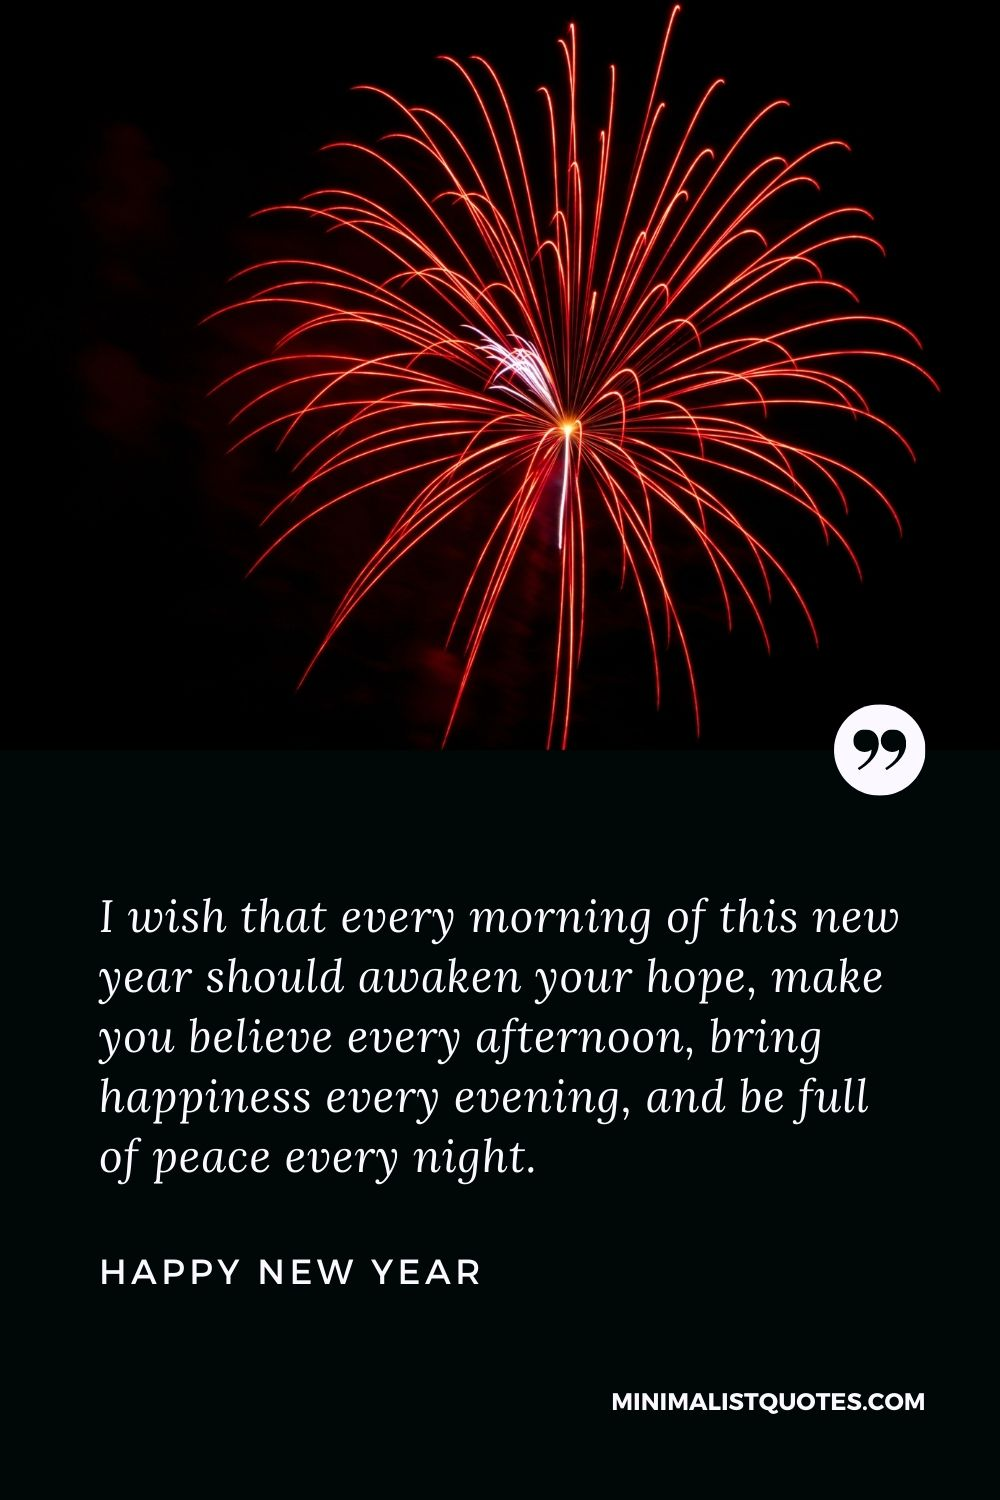 New Year Wish & Message With Image: I wish that every morning of this new year should awaken your hope, make you believe every afternoon, bring happiness every evening, and be full of peace every night.